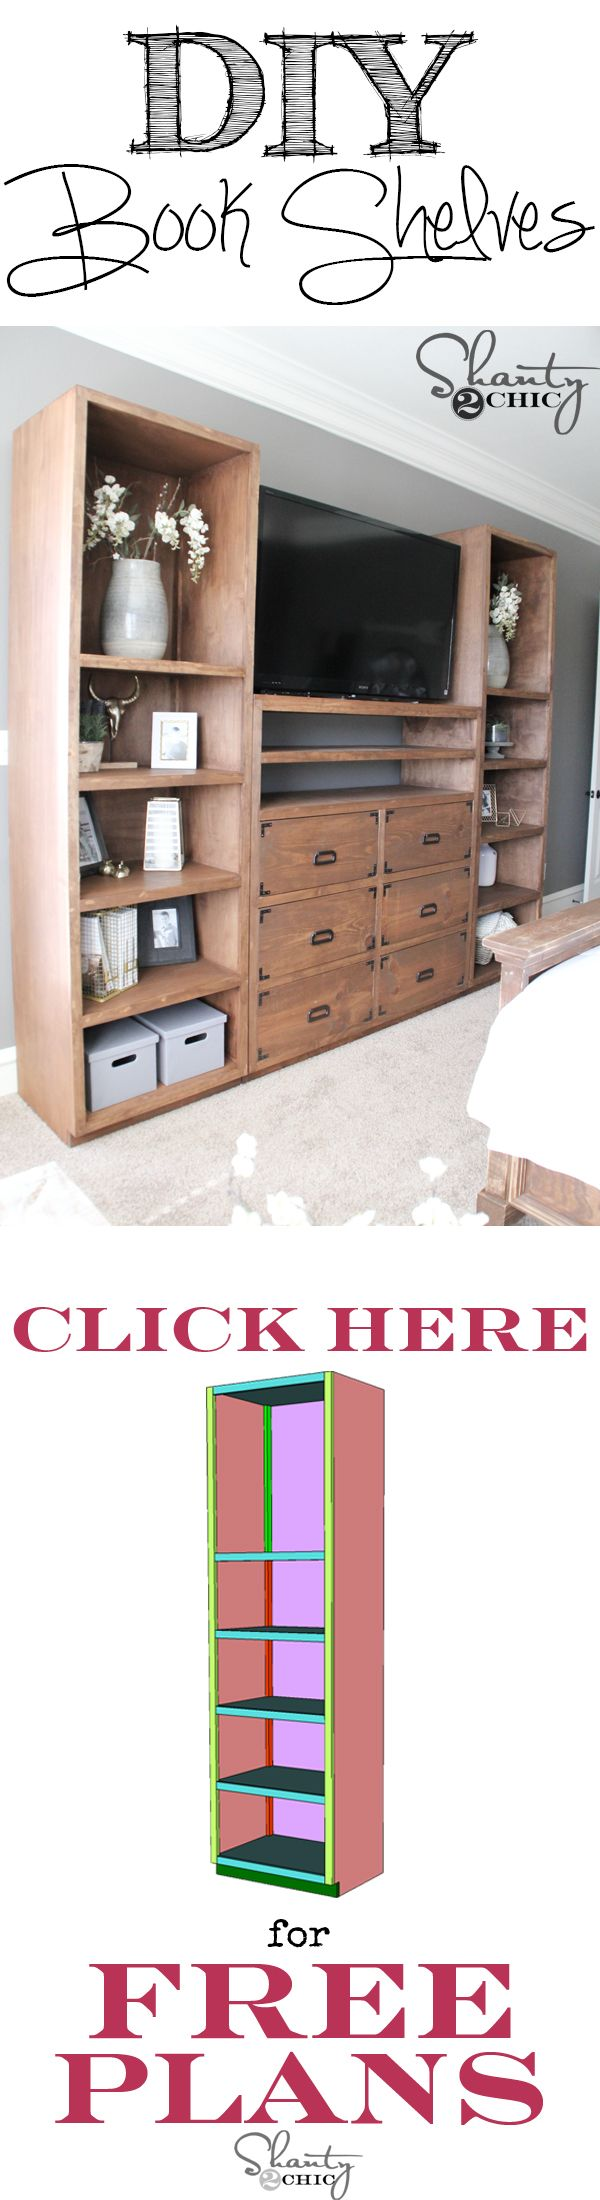 How To how to build your own door photos : DIY Shelves for my Sliding Barn Door Media Console | Book shelves ...